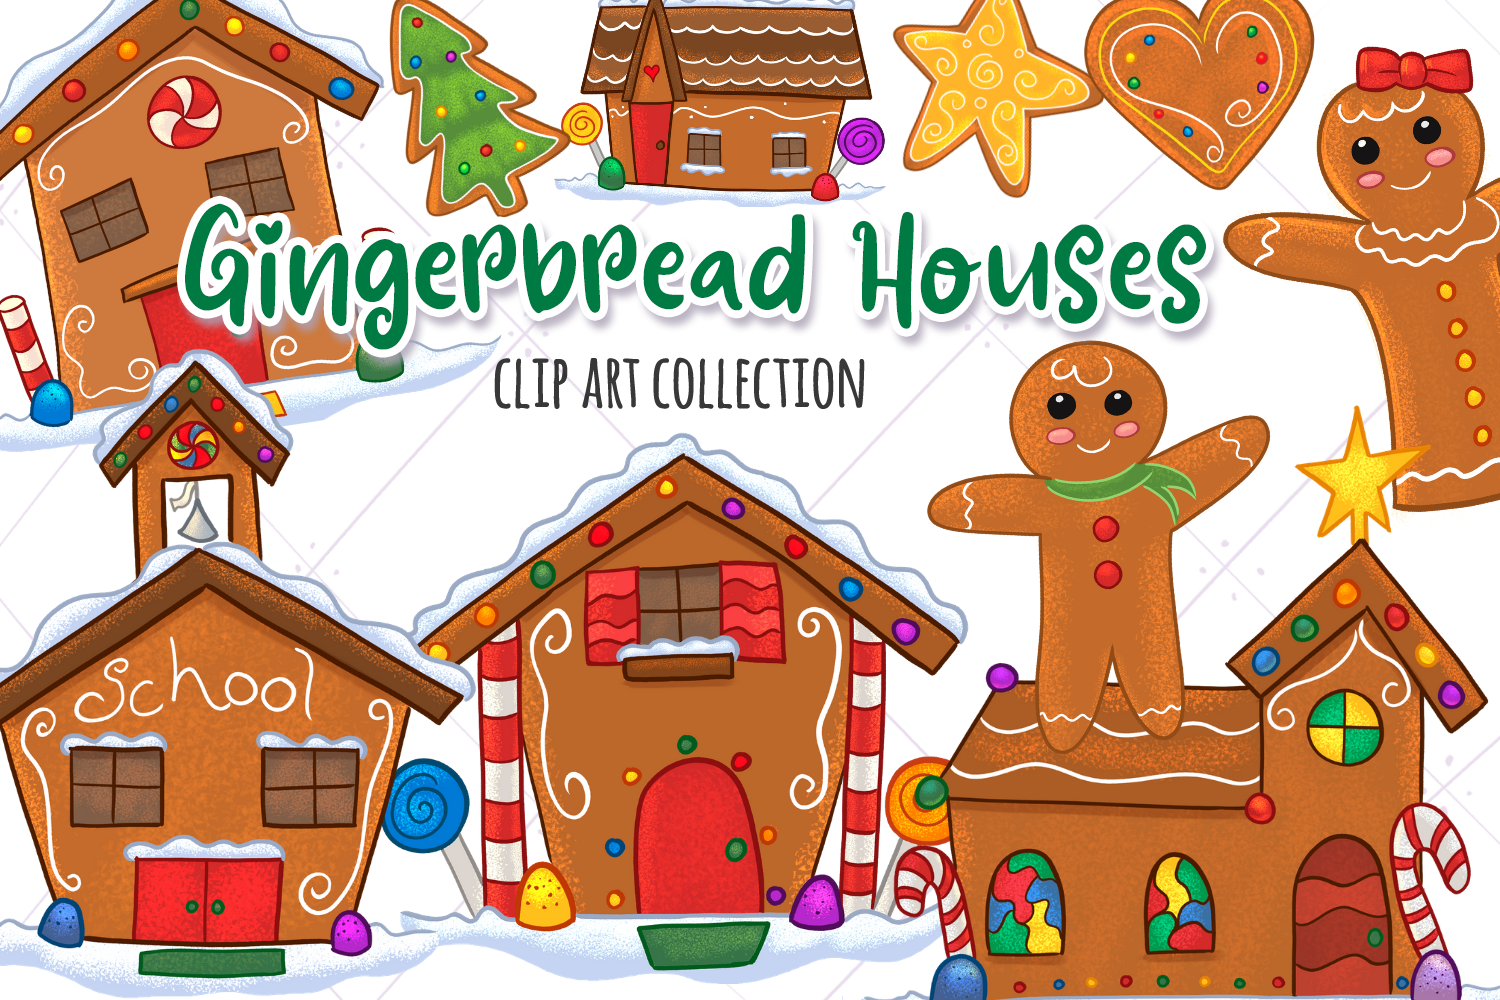 Download Free Gingerbread Houses Clip Art Collection Graphic By for Cricut Explore, Silhouette and other cutting machines.